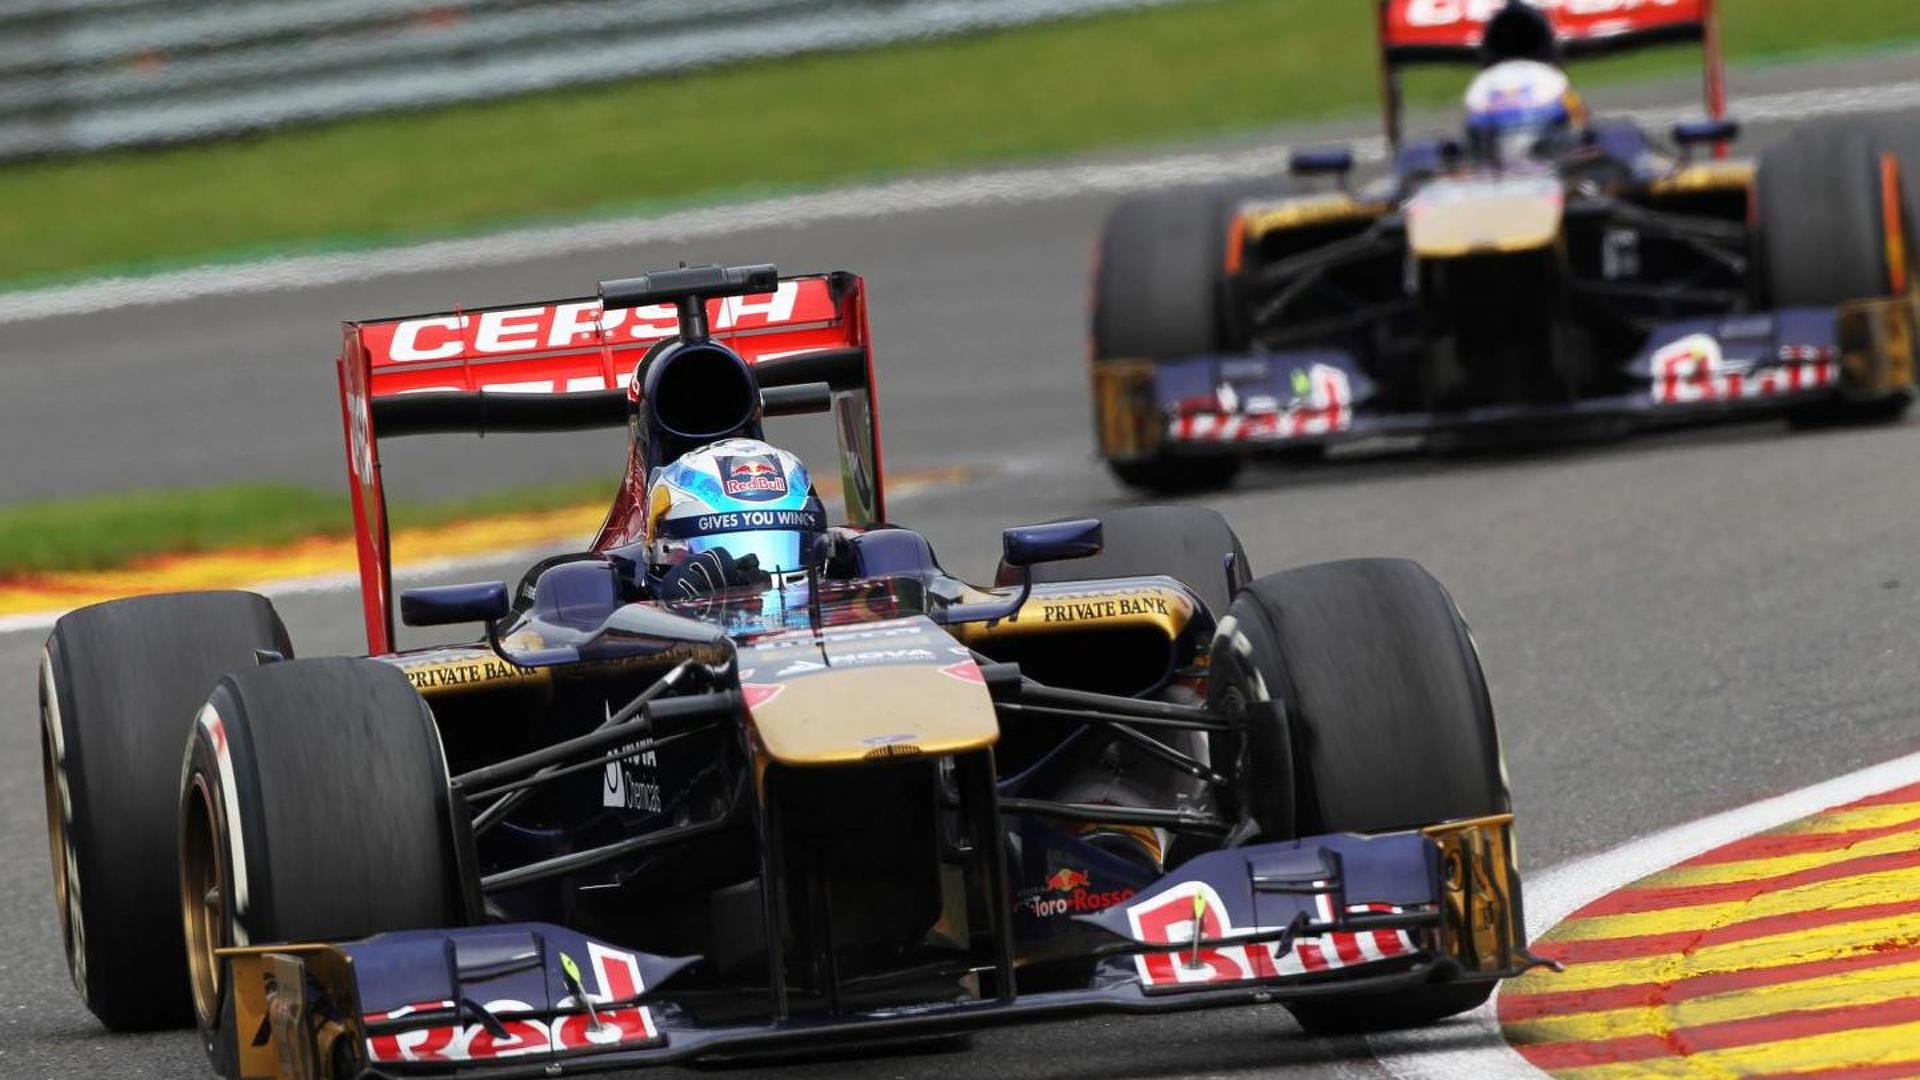 Toro Rosso drivers better than Sauber's - Tost